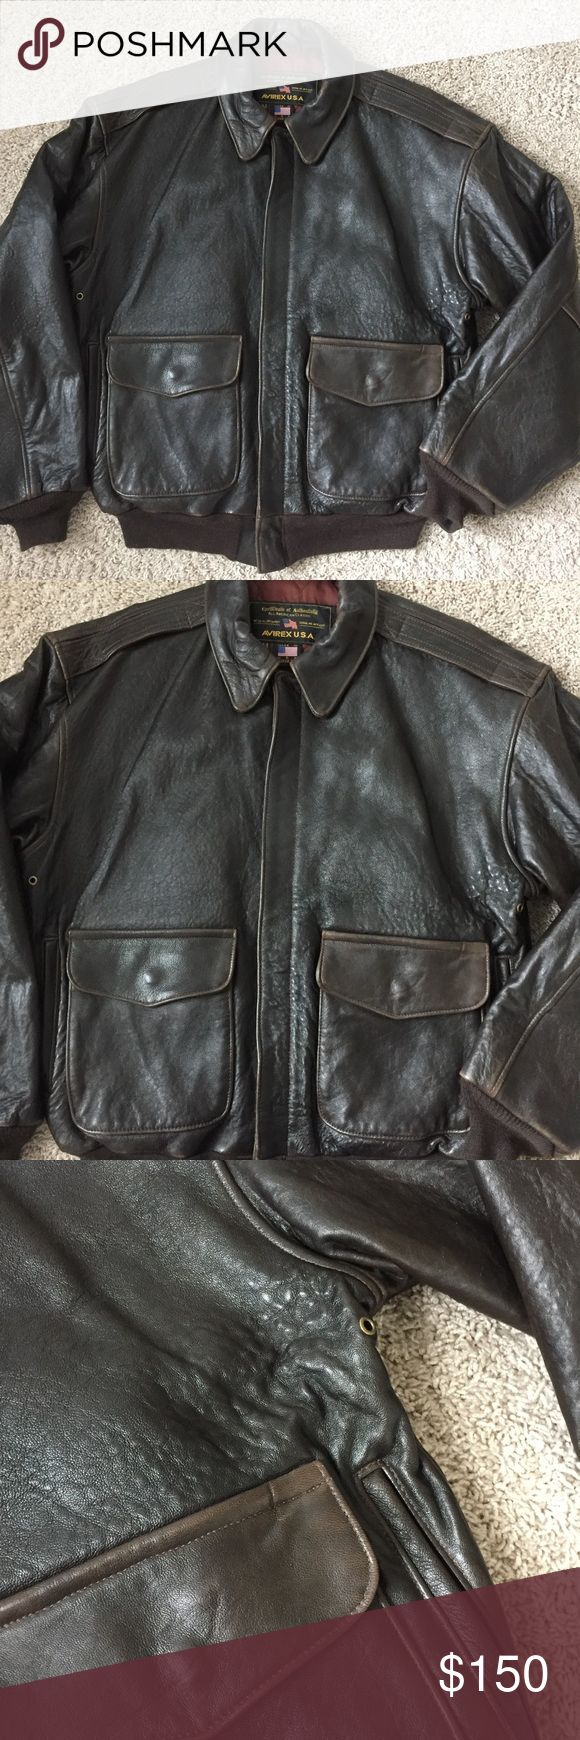 """Vintage Men's Leather Bomber Avirex Jacket Good used condition  No major signs of wear (a few marks in the leather from age & wear) Size Medium  Measurement approximately.... Shoulder to shoulder 22"""" Armpit to armpit 24"""" Arm length 25"""" Total length (shoulder to bottom) 27"""" avirex Jackets & Coats"""